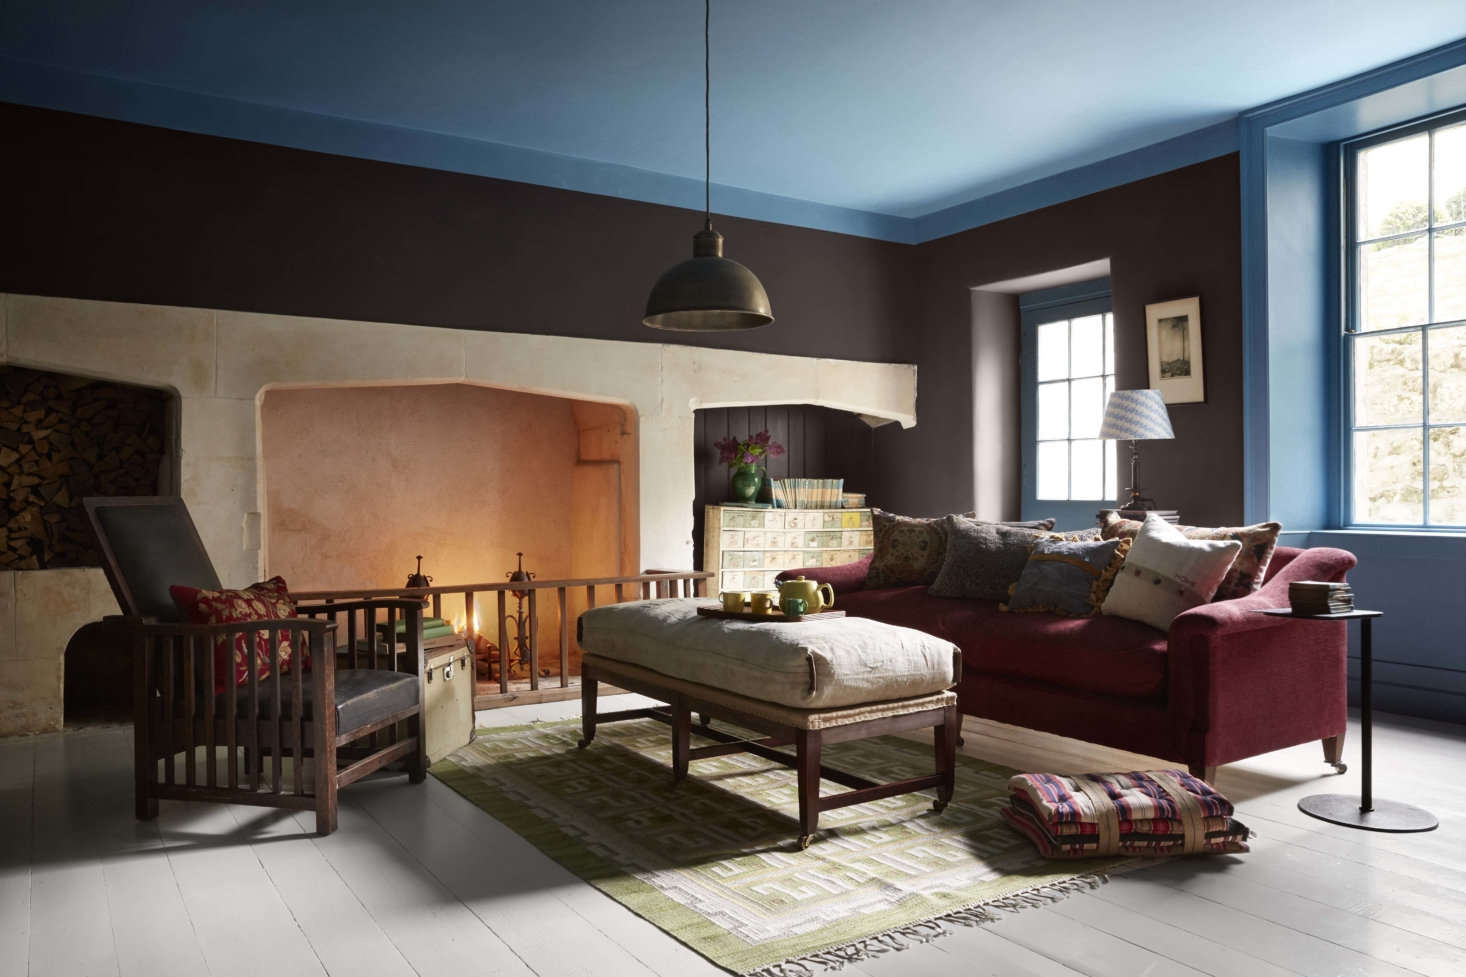 The kitchen was originally set downstairs in the partially above-ground basement, now used as a family room or &#8